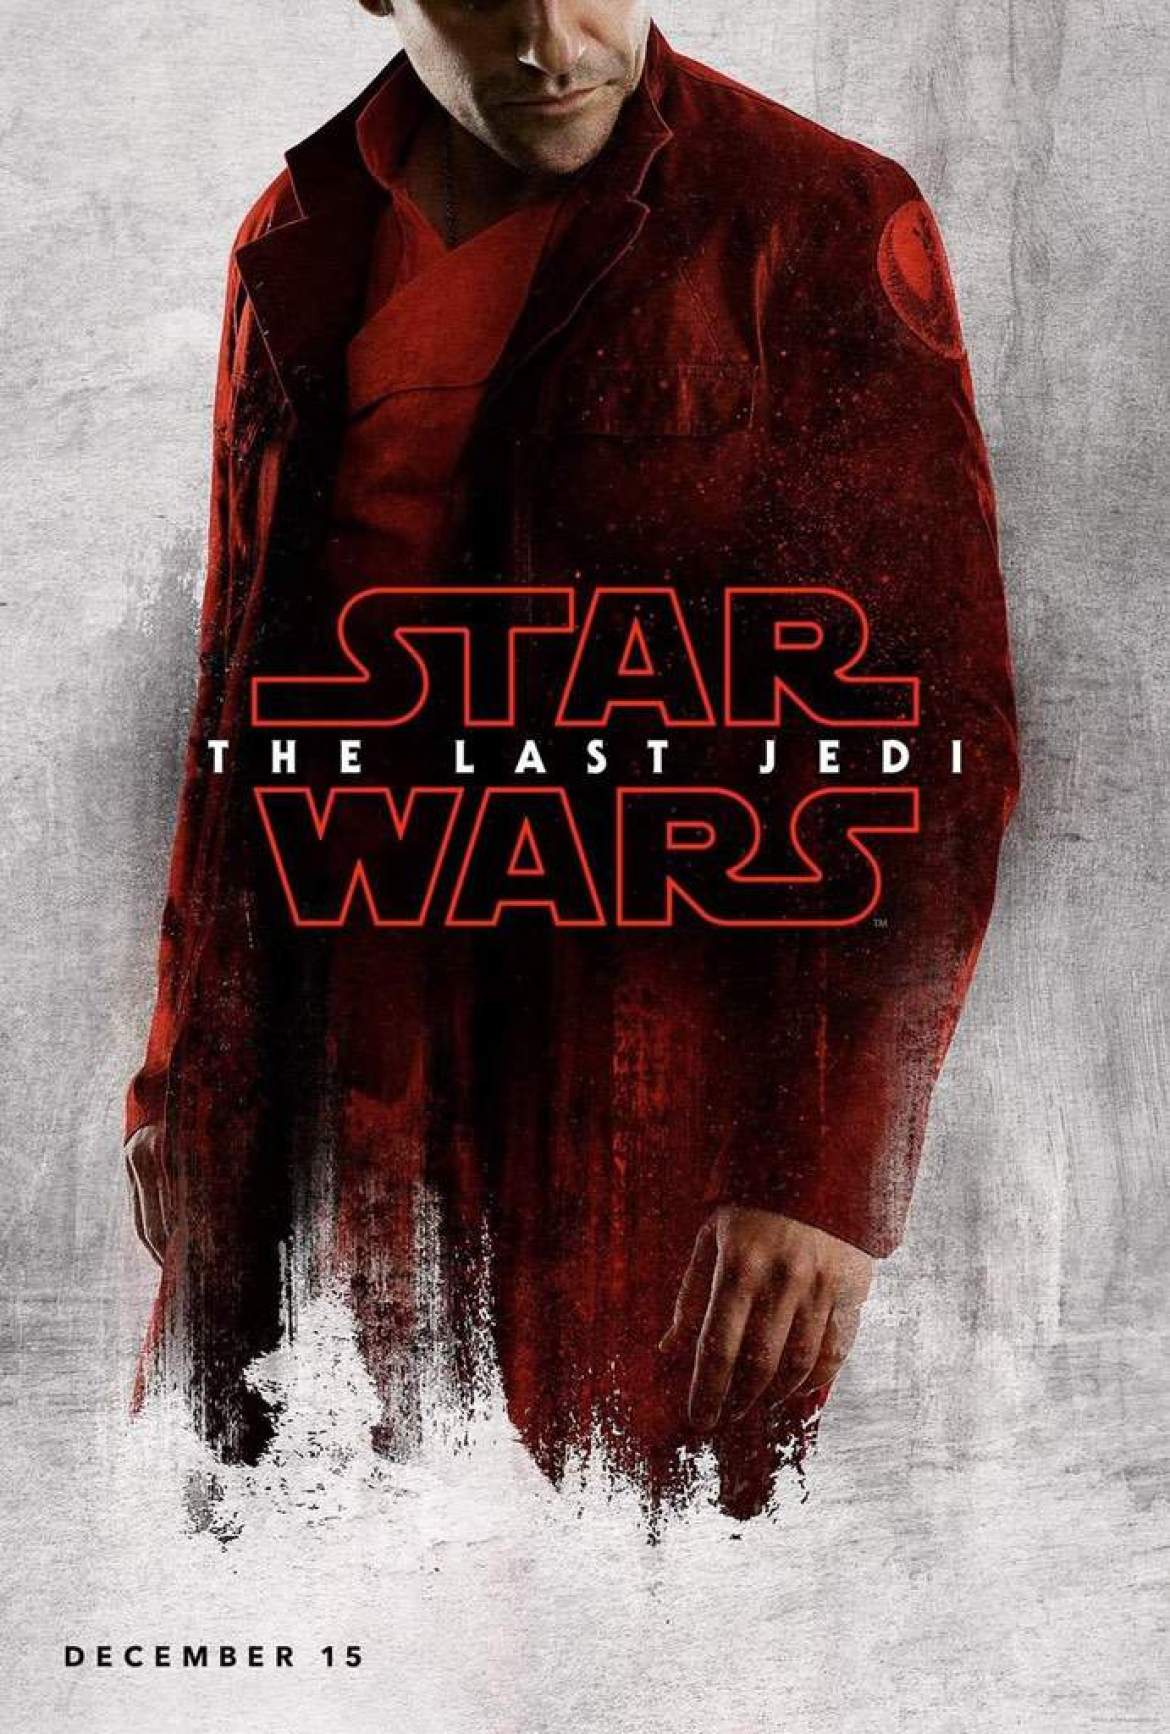 IMG 9264 - Six Star Wars: The Last Jedi character posters